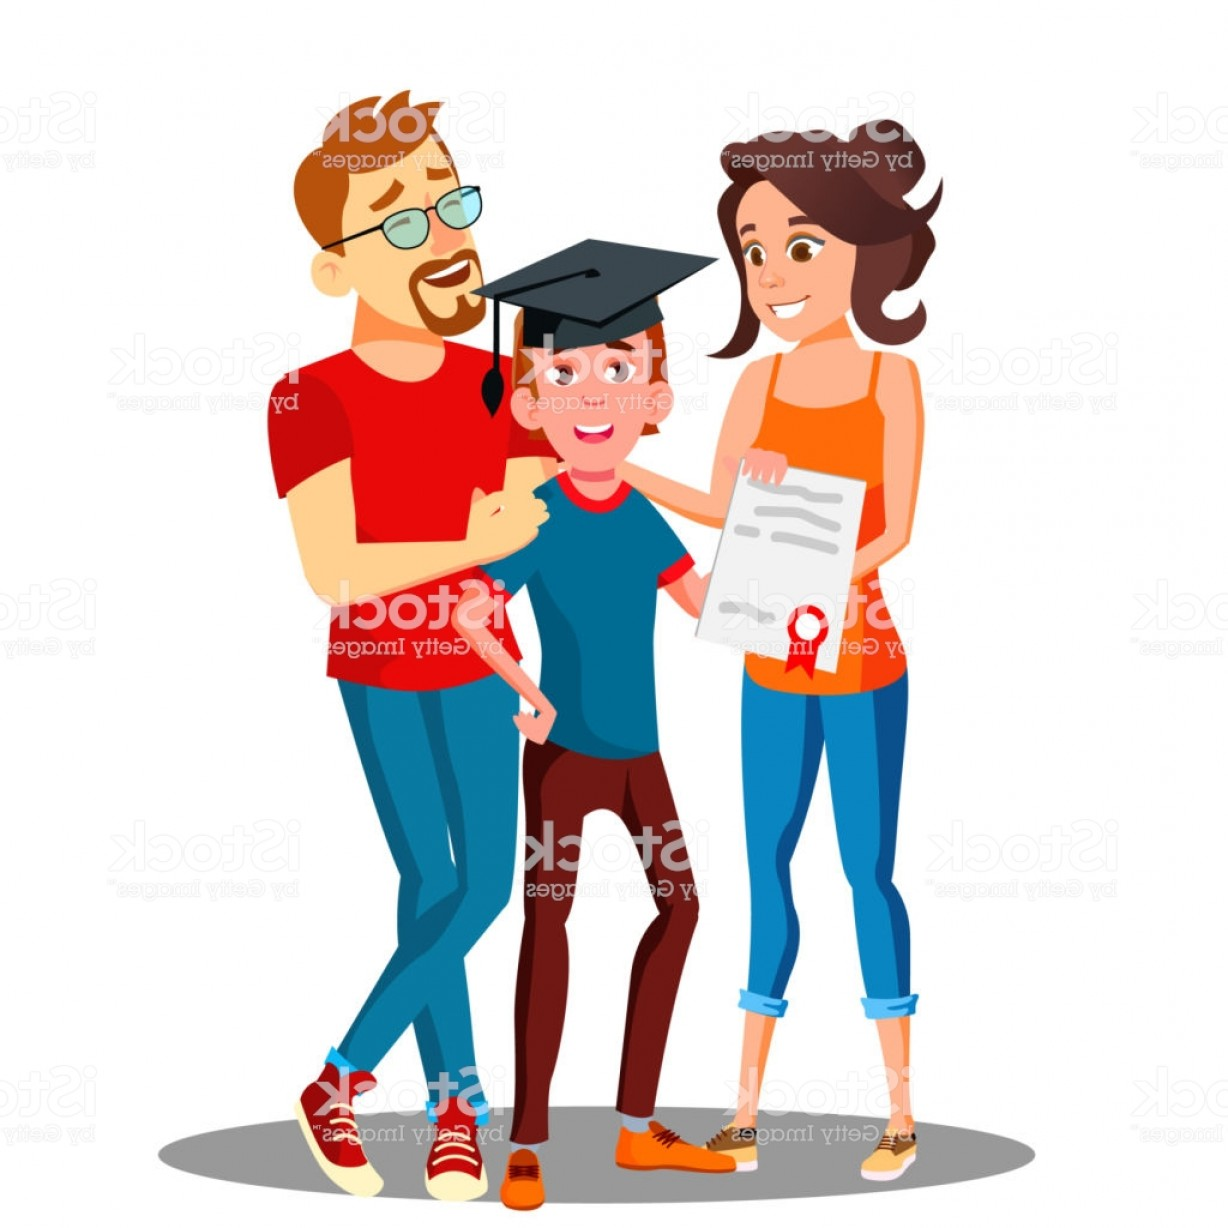 Standing Diploma Vector: Happy Parents Standing Behind The Student With Diploma And Graduate Cap Vector Gm